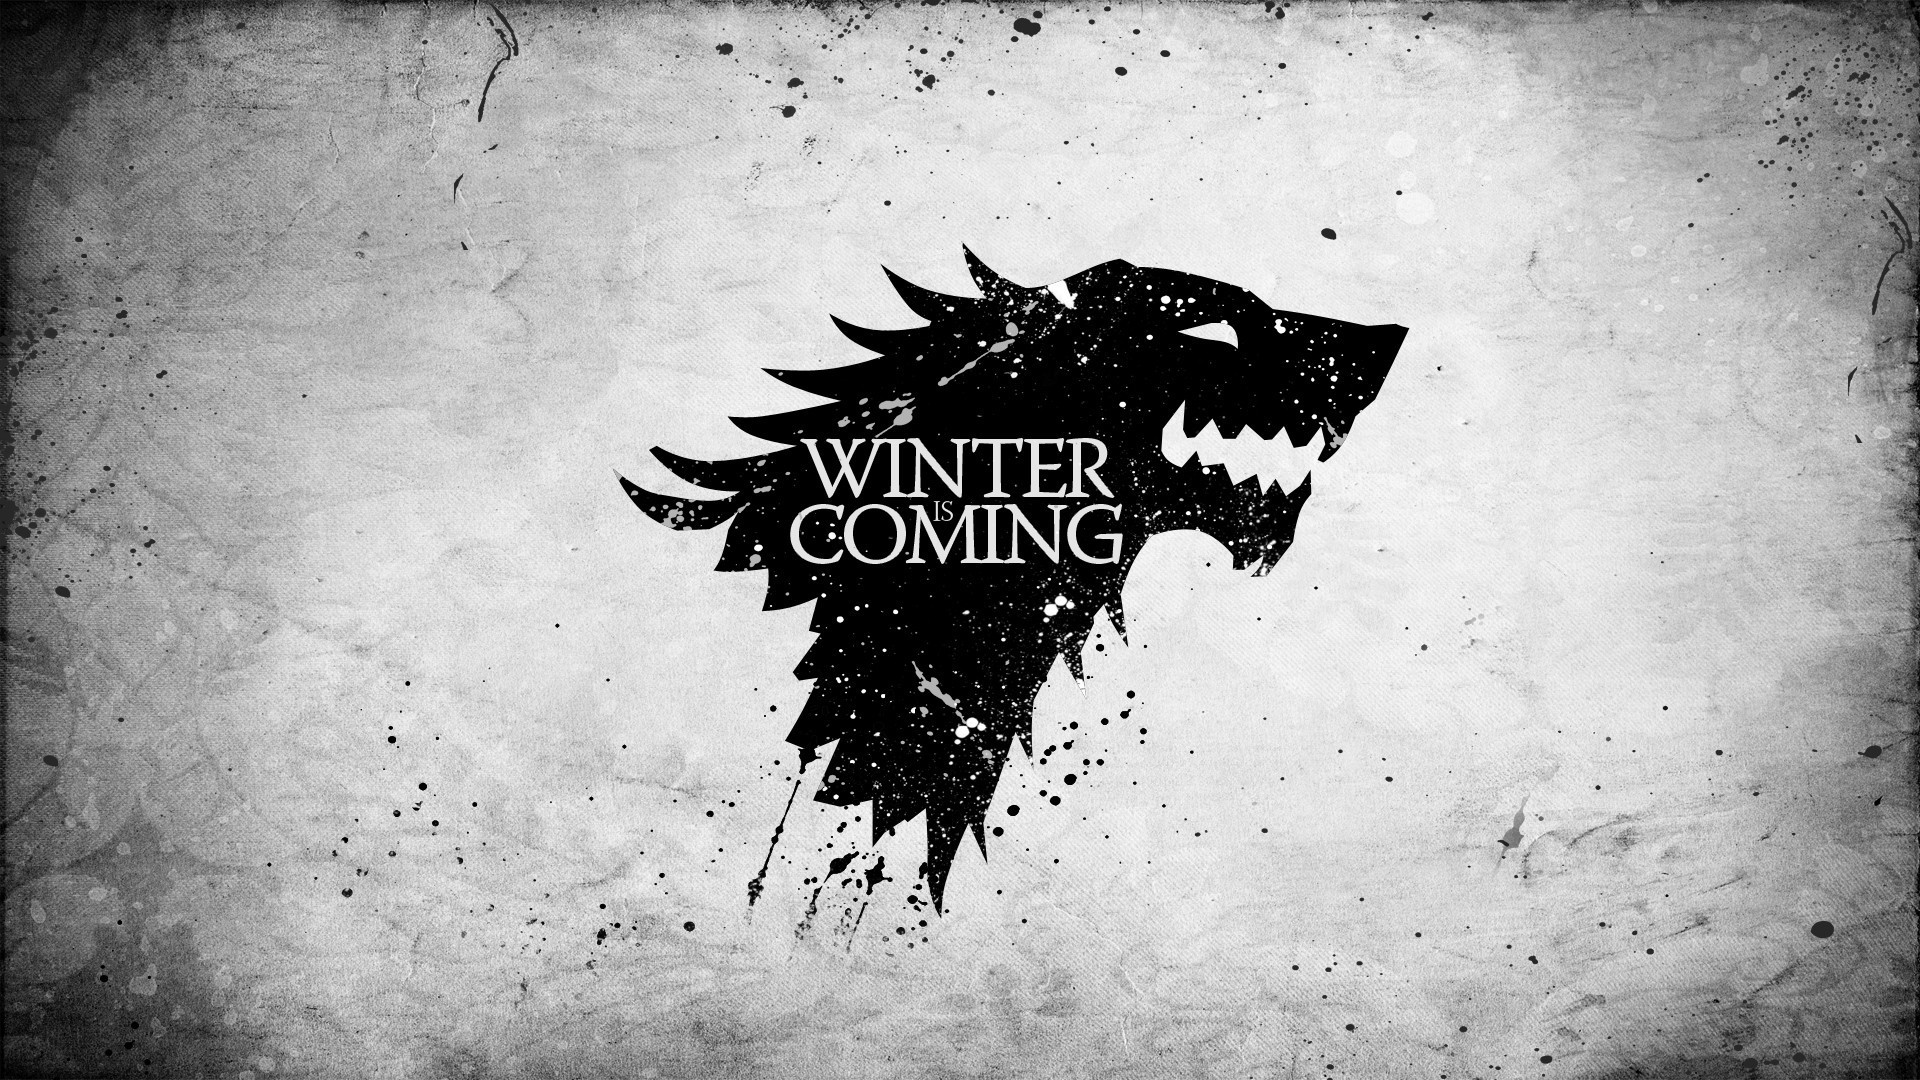 A Song Of Ice And Fire Game Of Thrones House Stark Sigils Winter Is Coming 1920x1080